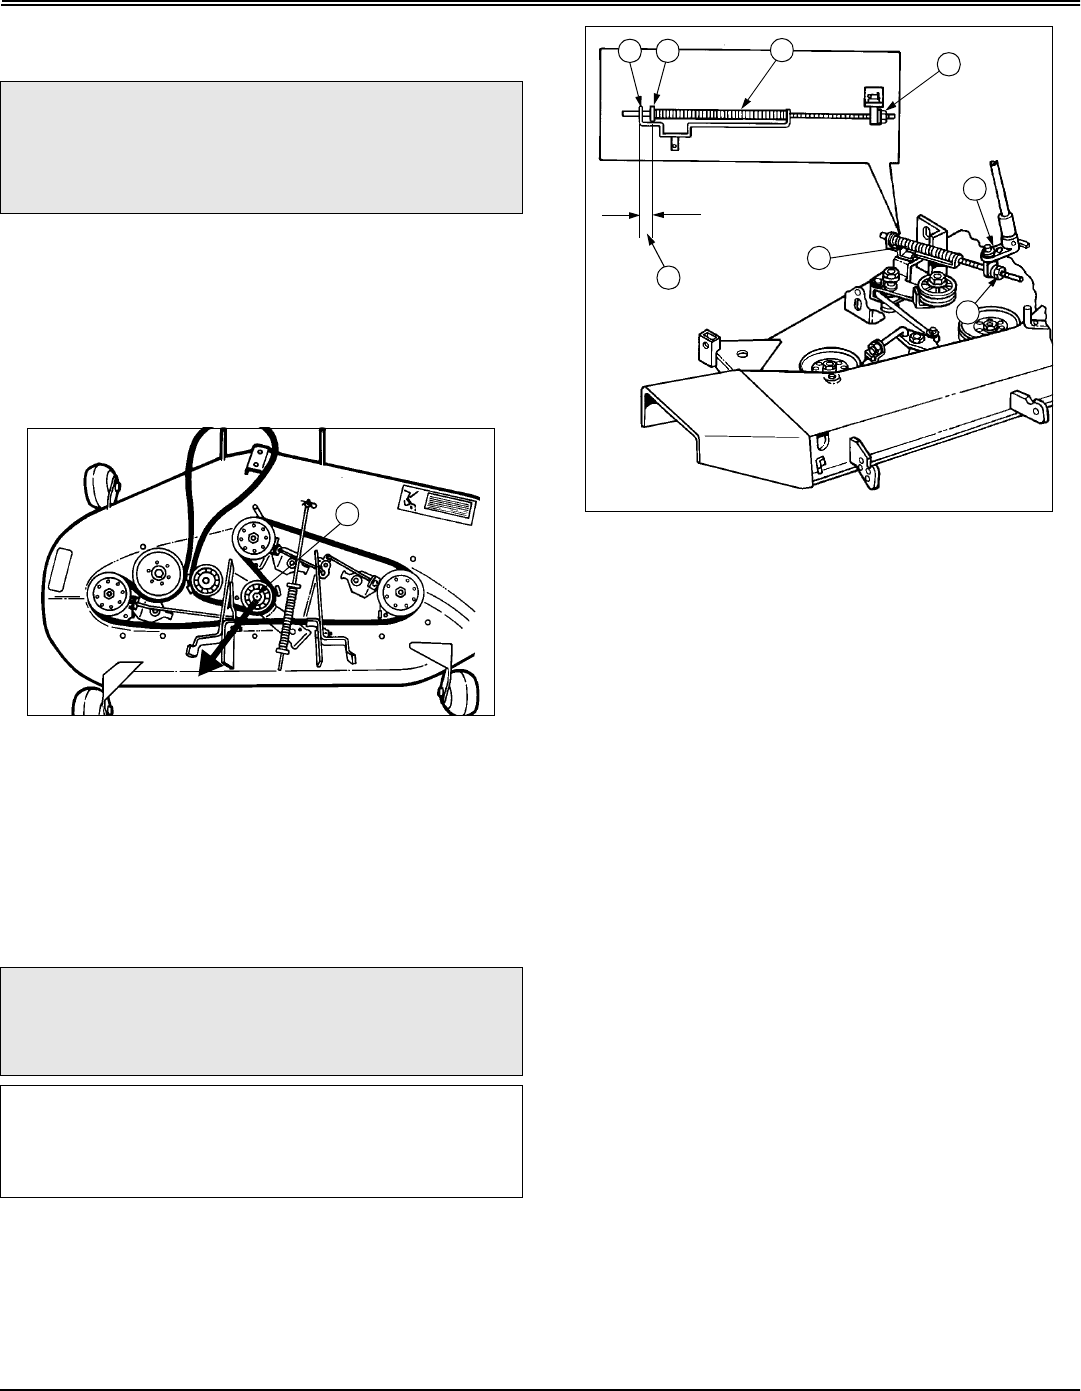 hight resolution of scotts s2546 lawn mower user manual